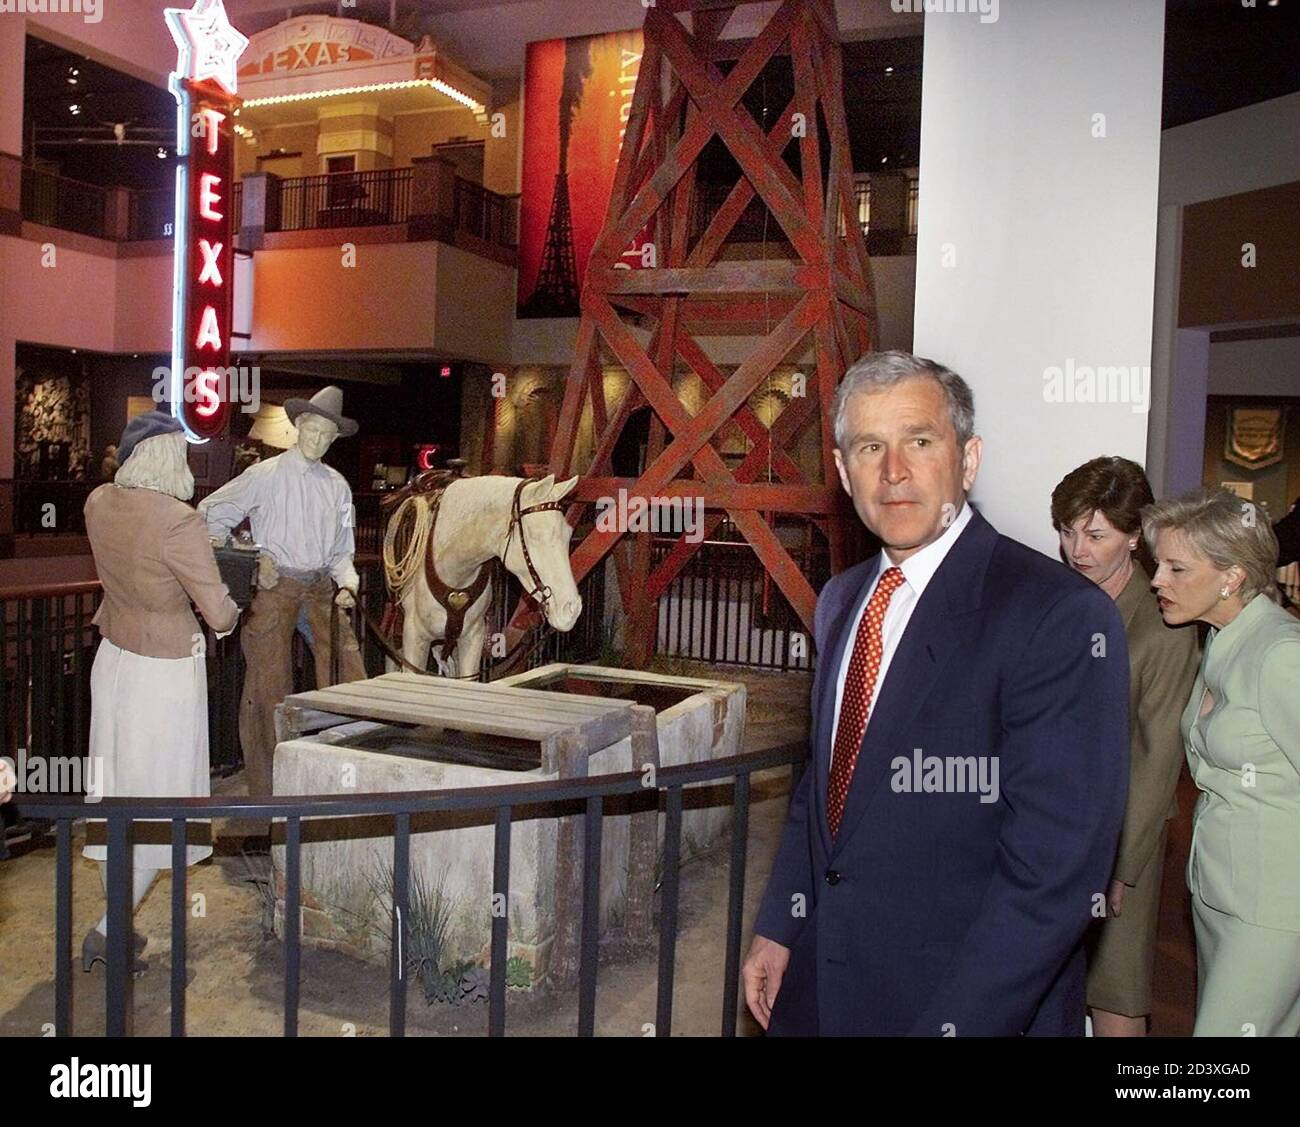 U.S. President George W. Bush and first lady Laura Bush are given tour of the Bob Bullock Texas History Museum by Anne Johnson (R) while in Austin, Texas, April 27, 2001. The president attended the dedication and opening ceremony for the museum named after former Texas Lt. Govenor Bob Bullock.  LSD Stock Photo